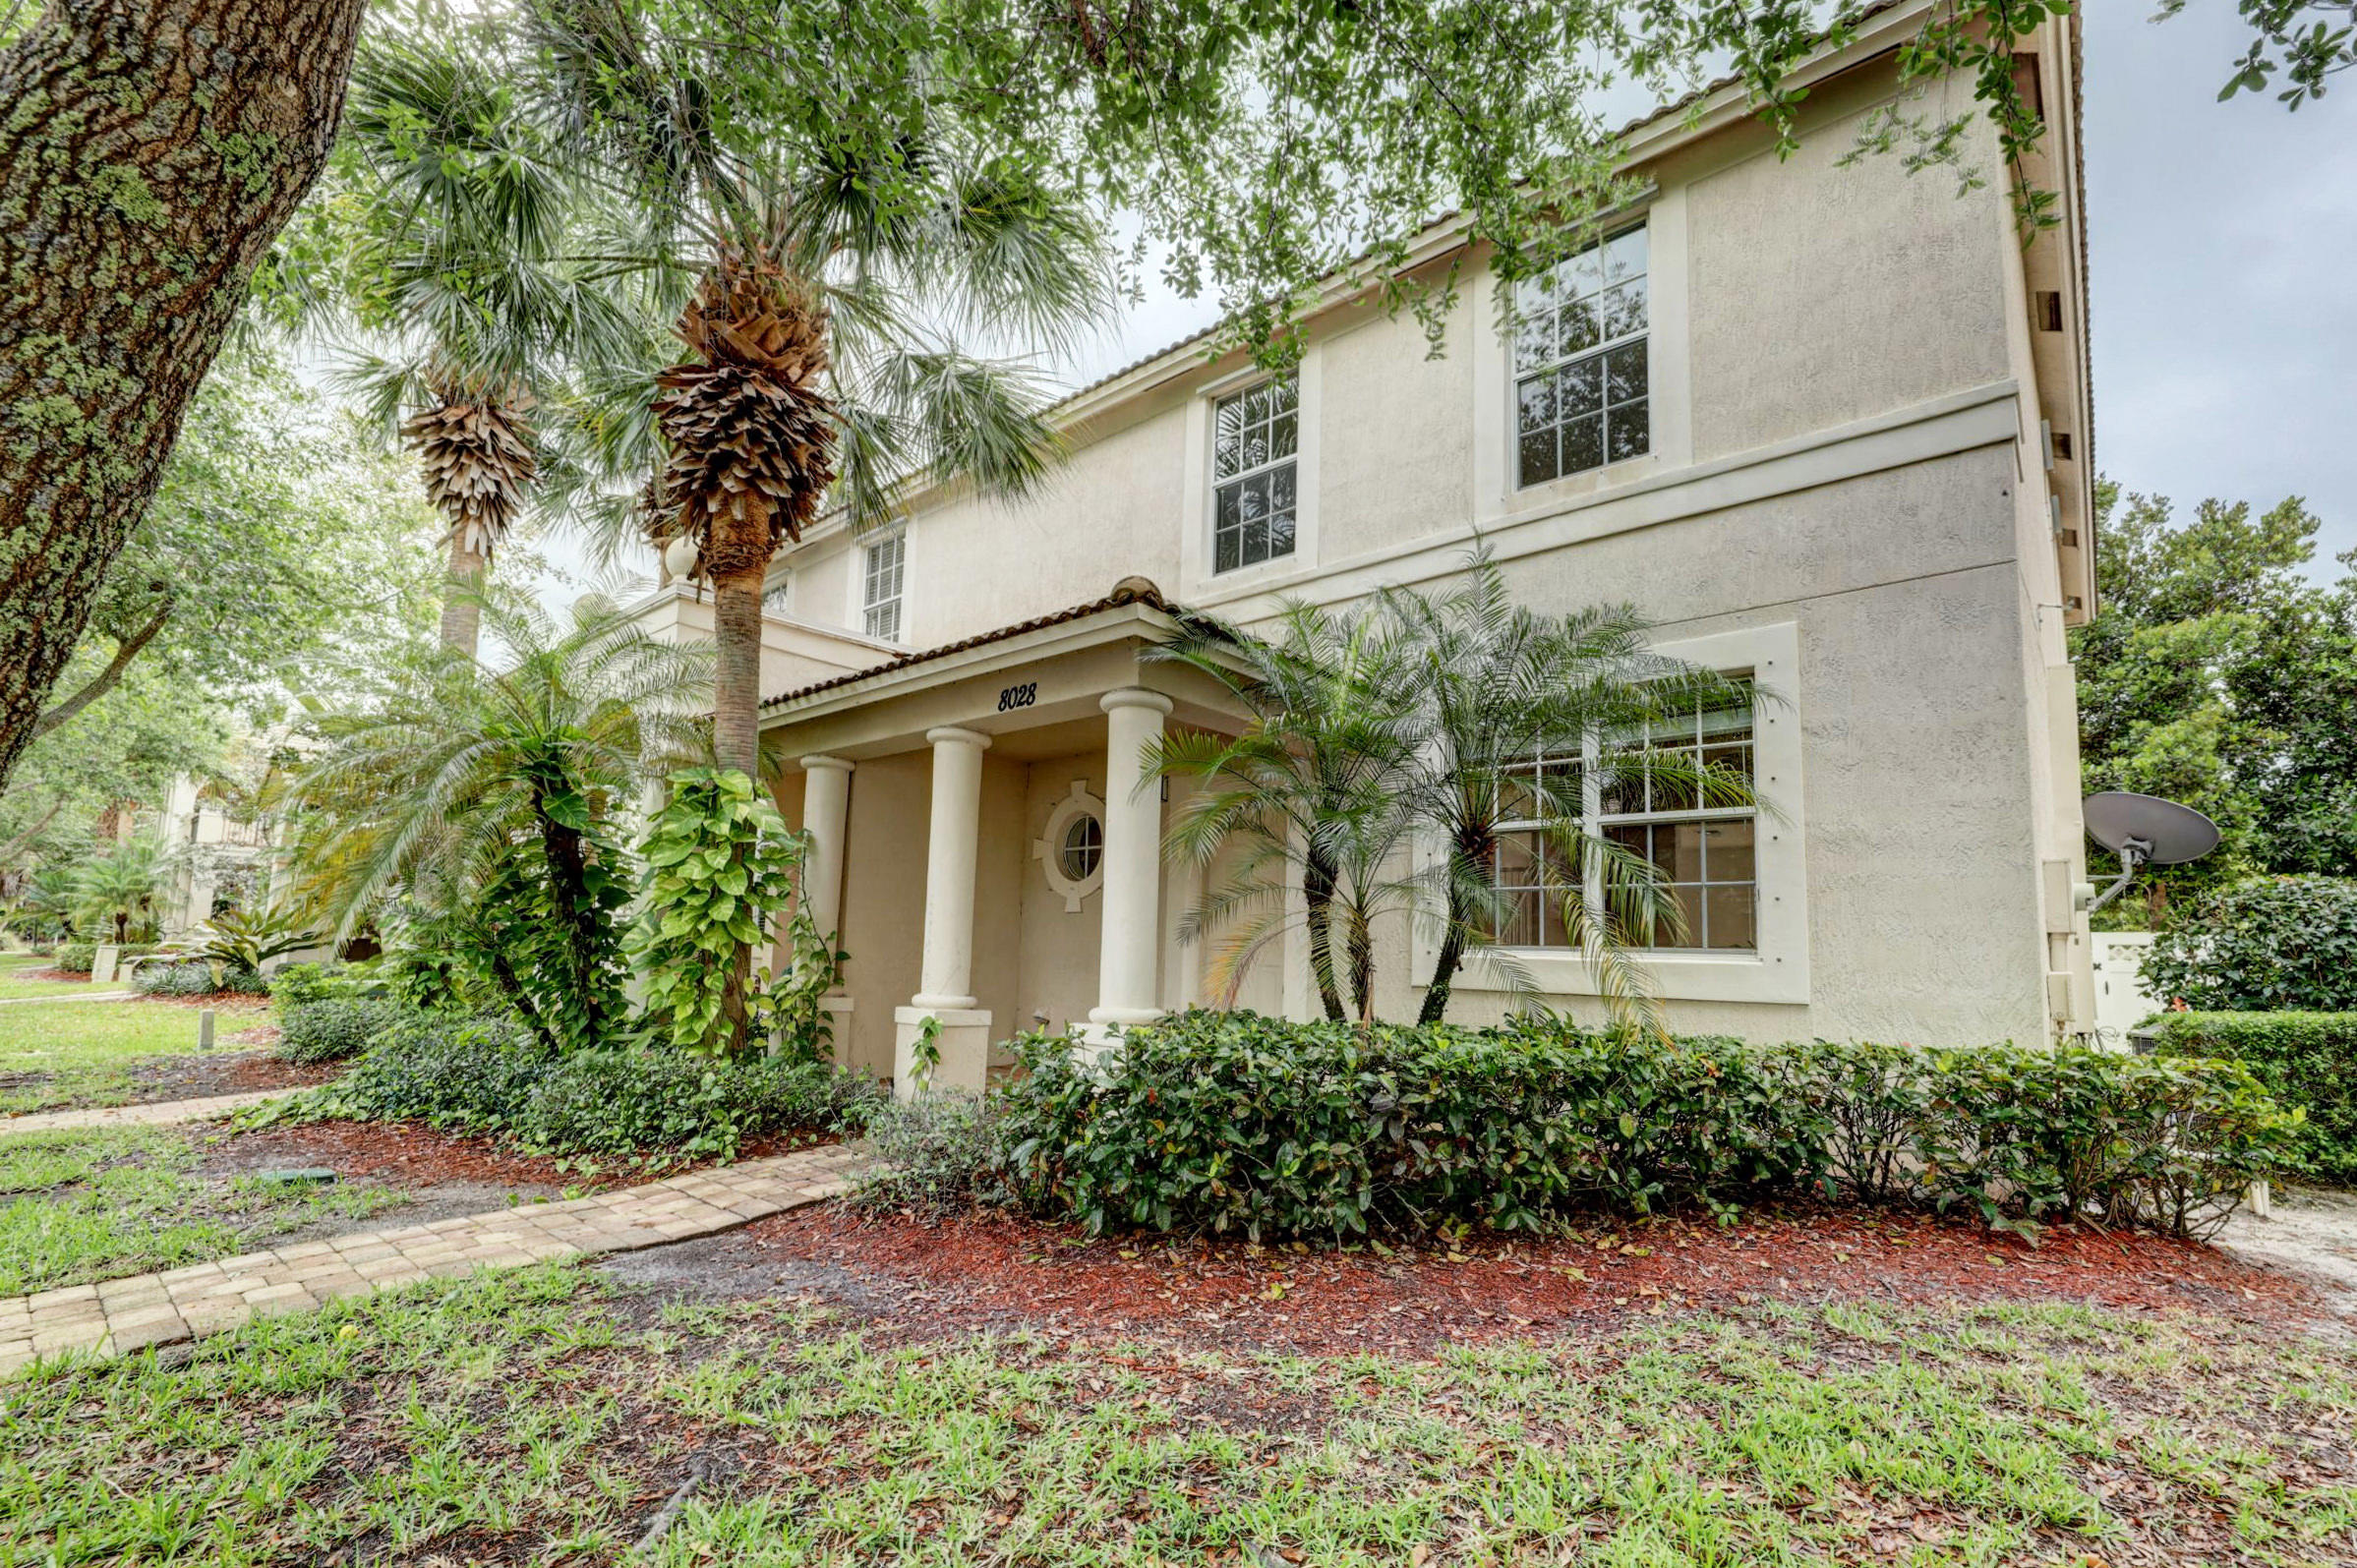 Home for sale in gables at northlake repl Palm Beach Gardens Florida